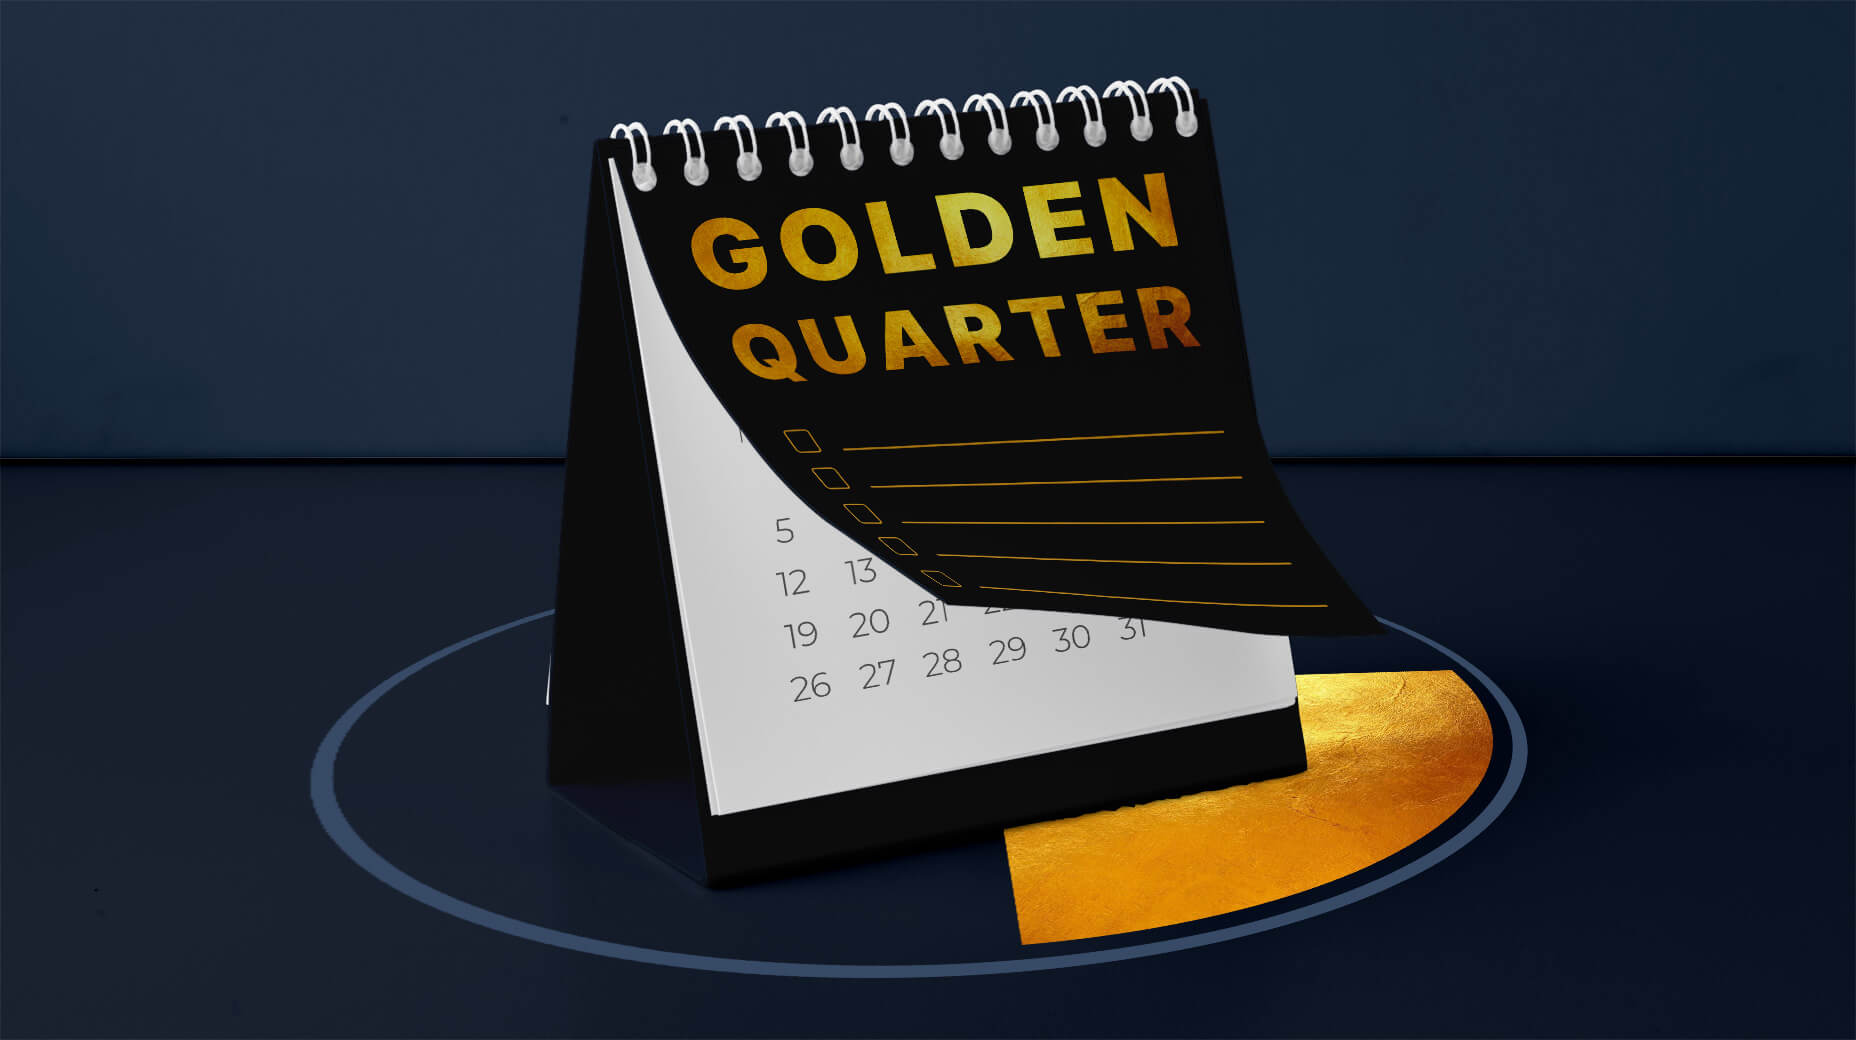 5 things you should know about the 2021 ecommerce Golden Quarter